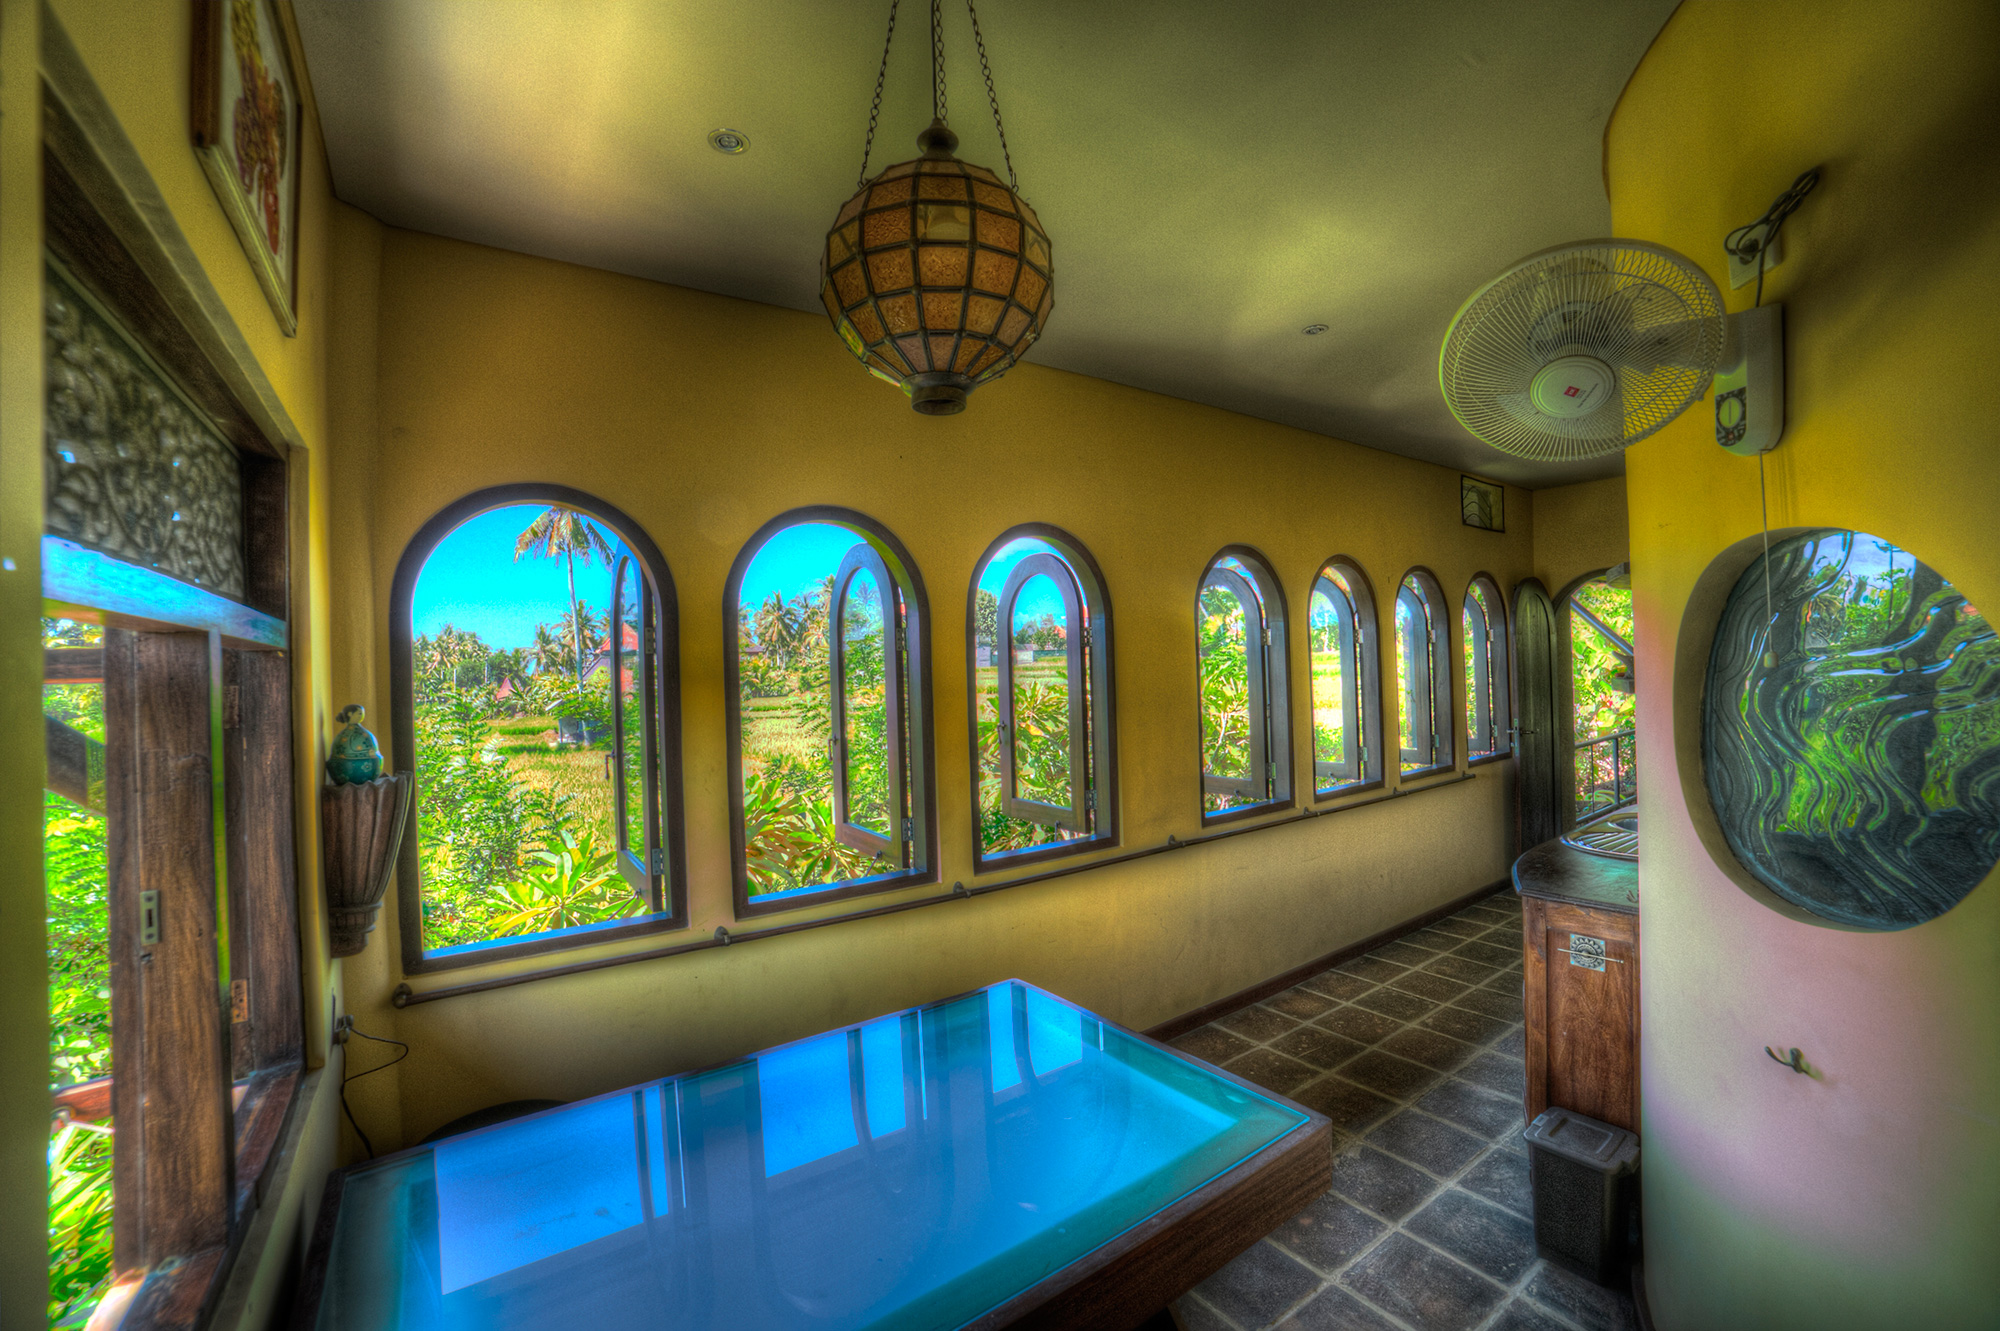 474A9005_6_7_tonemapped